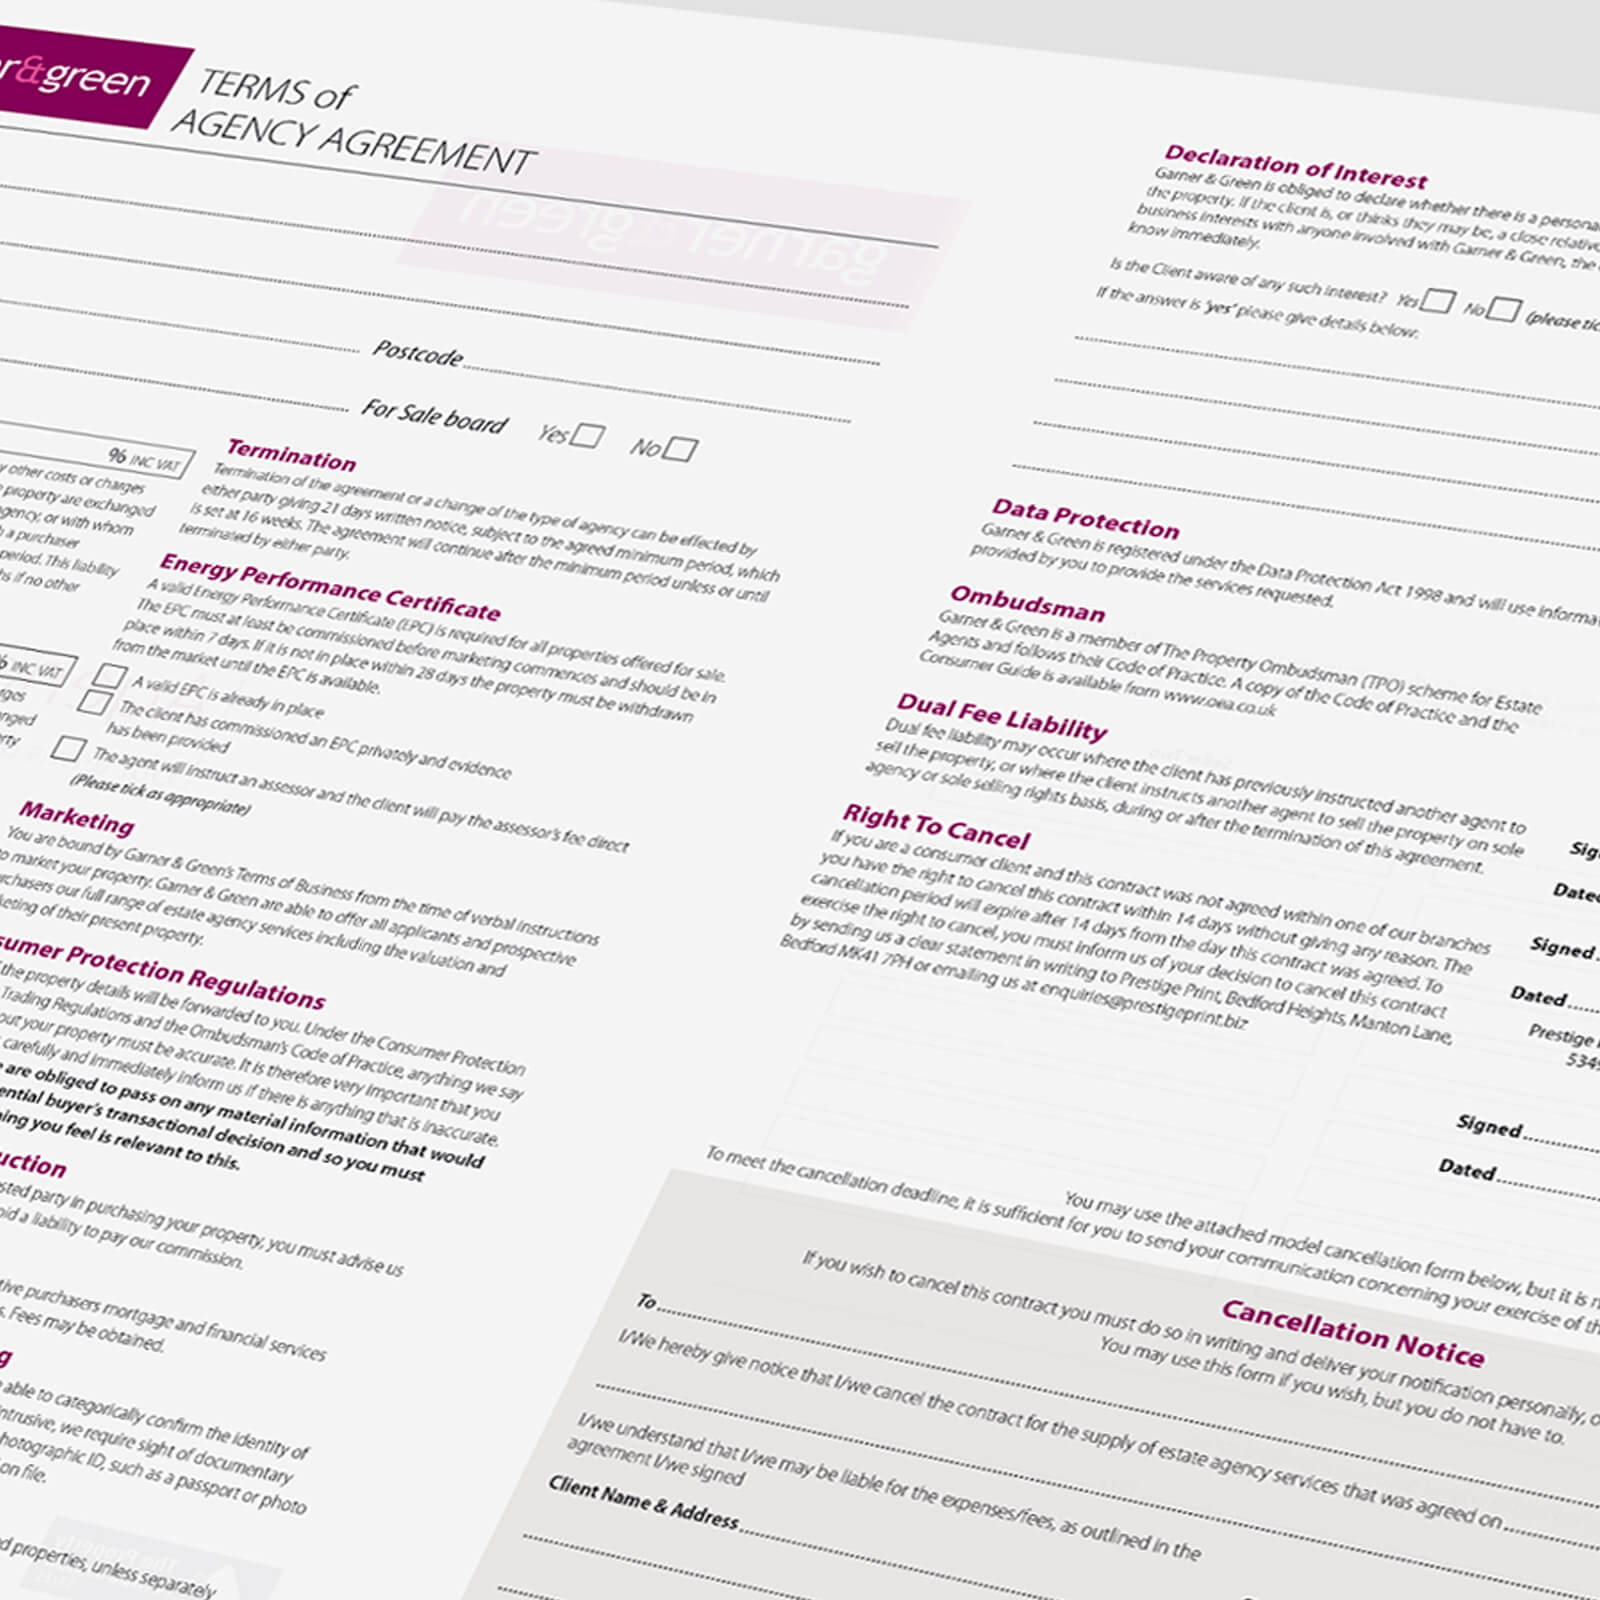 Estate Agents Agreement Template FeatureHead NCR Sales 02